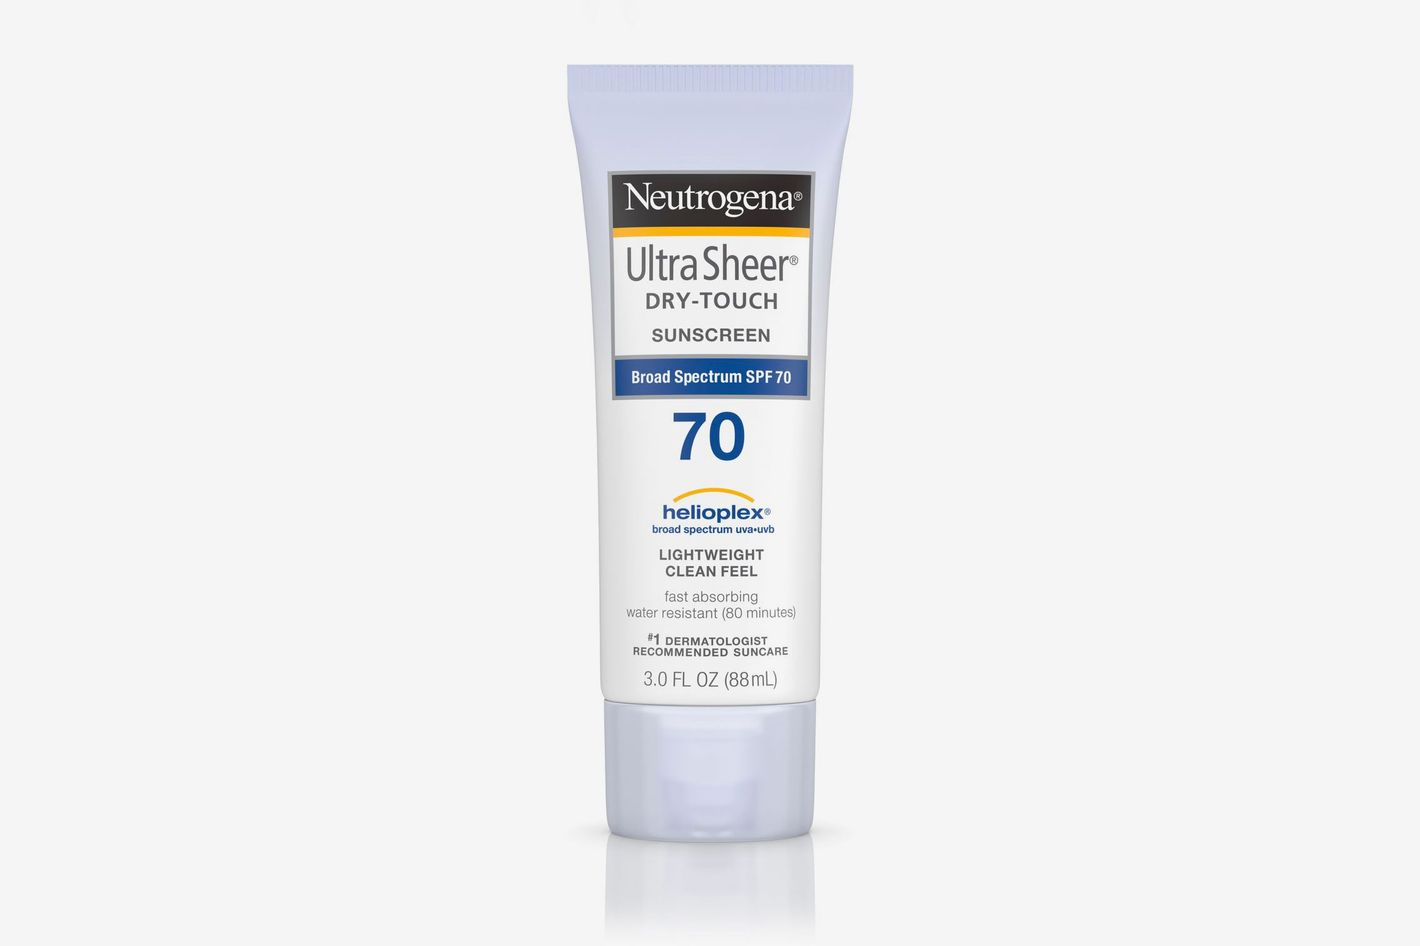 Neutrogena Ultra Sheer Liquid Sunscreen